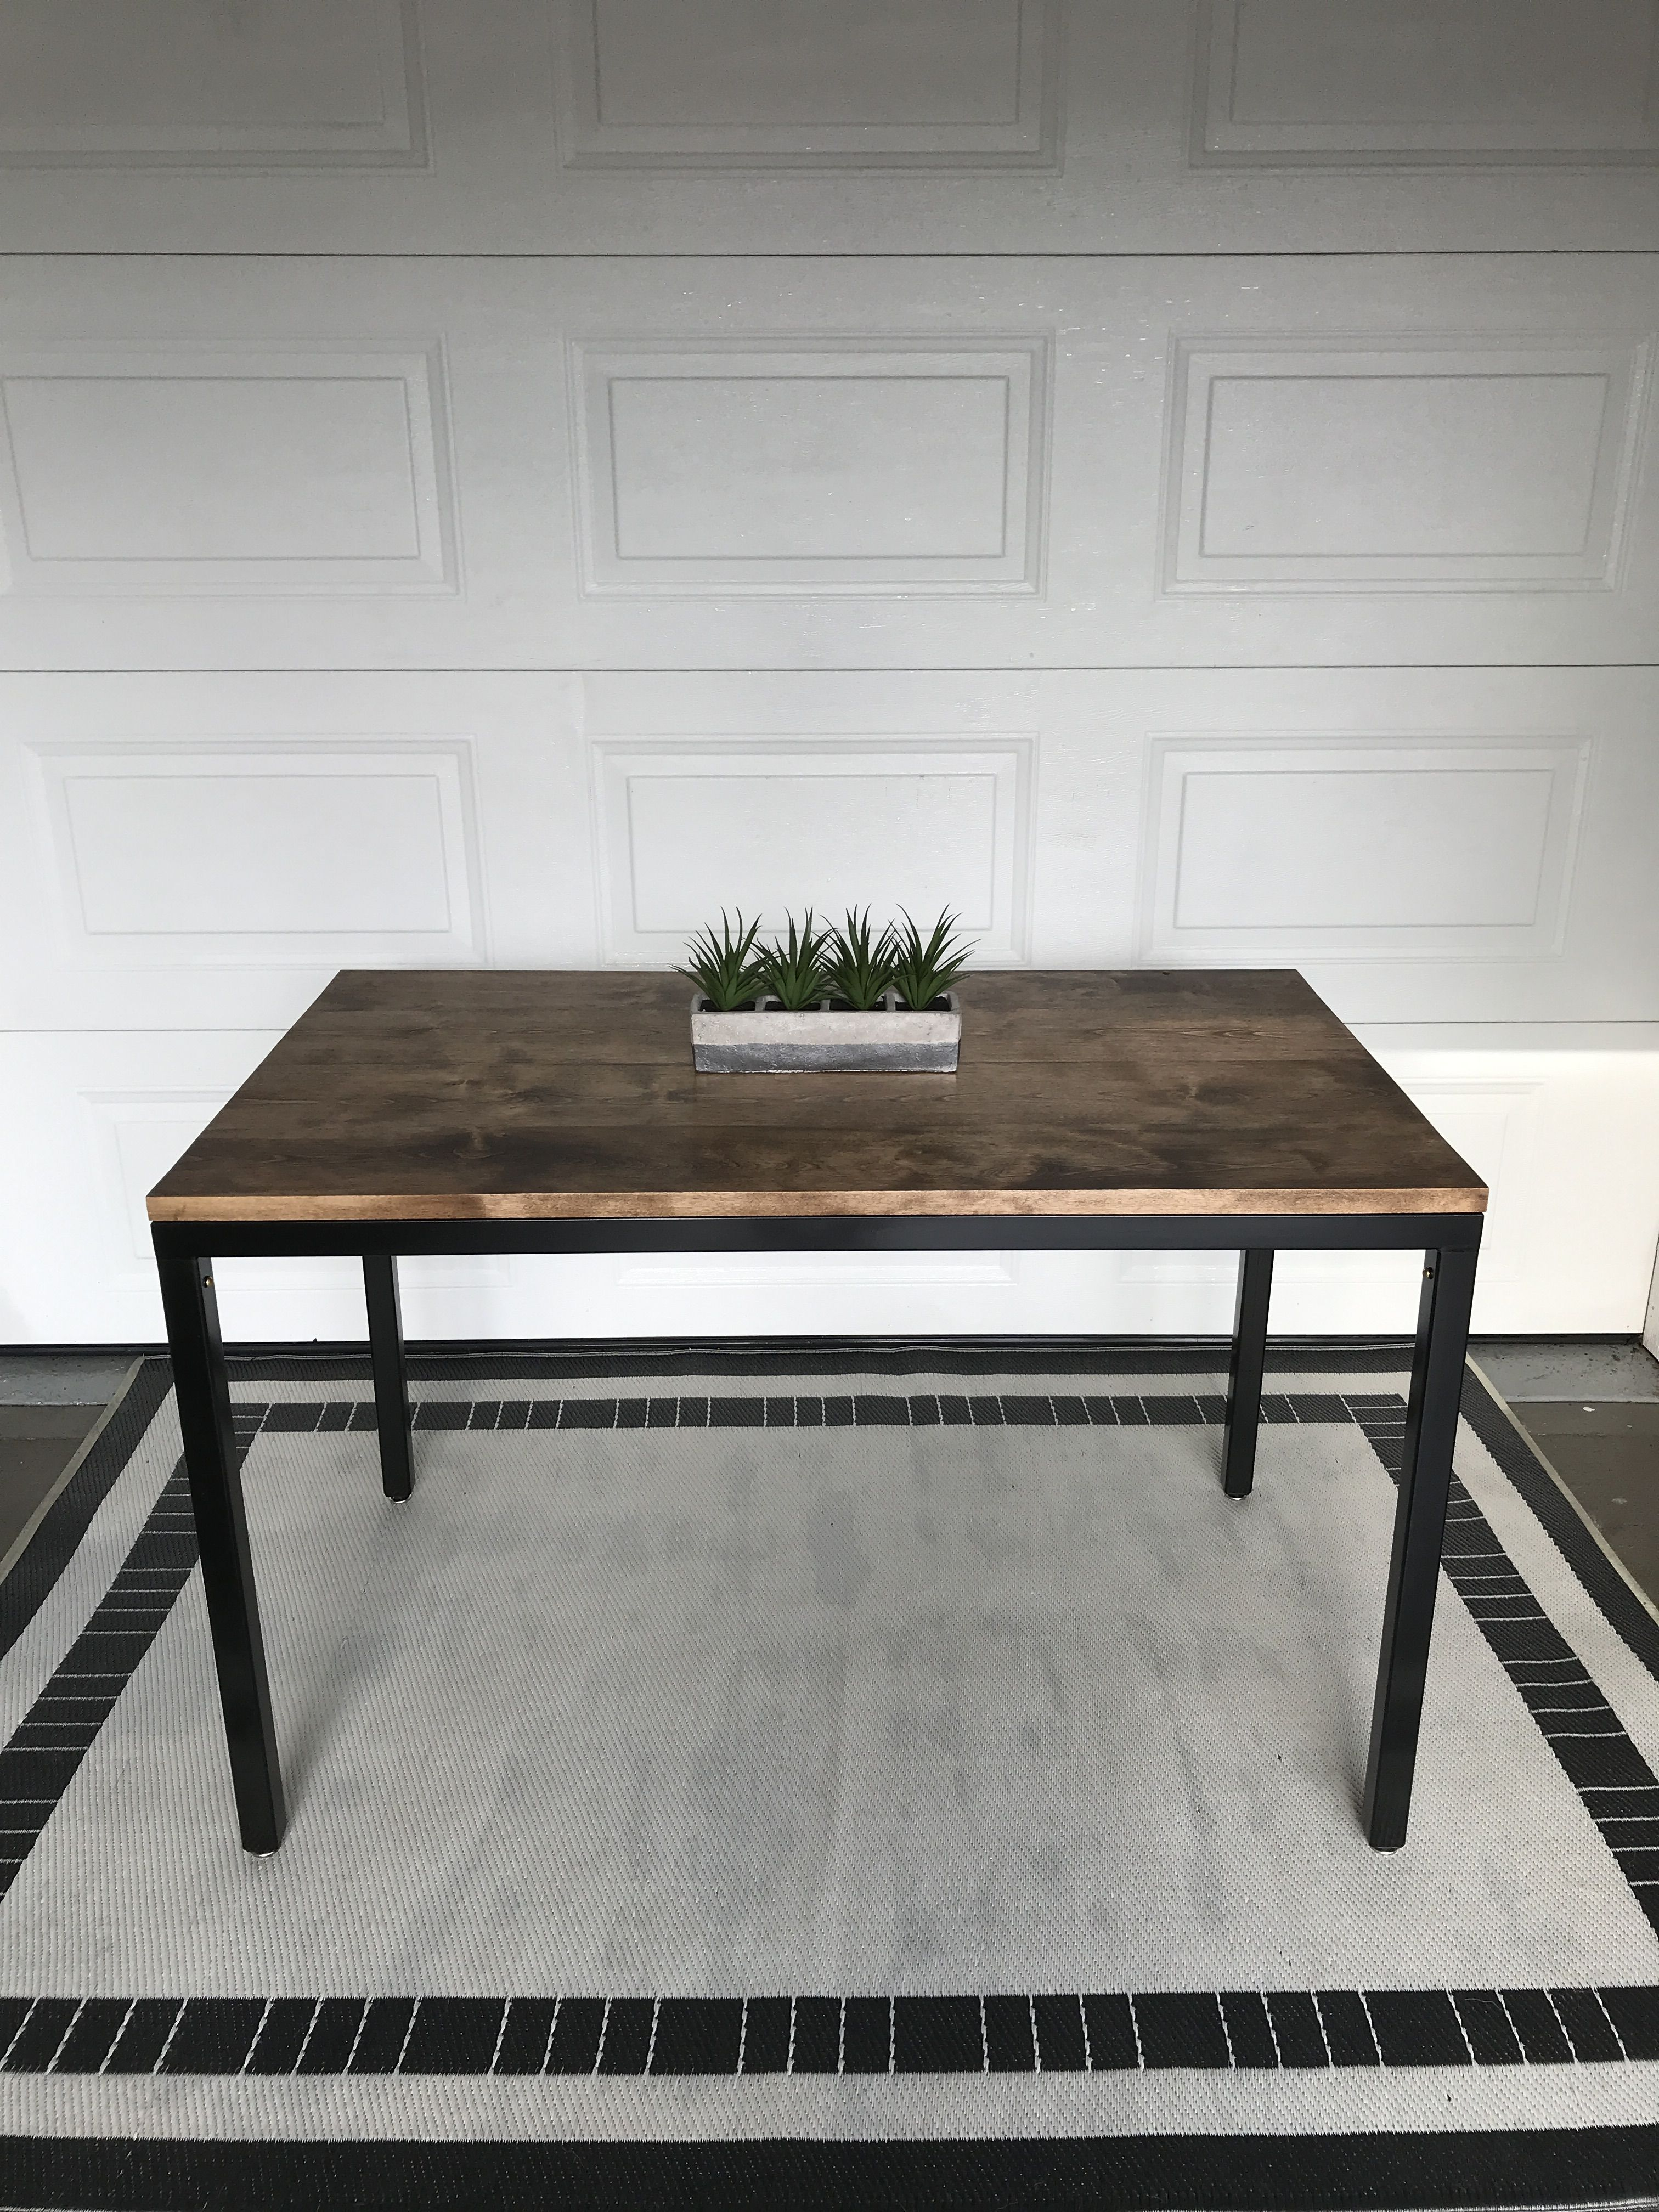 48x28x30 kitchen table by Upscale Union Perfect